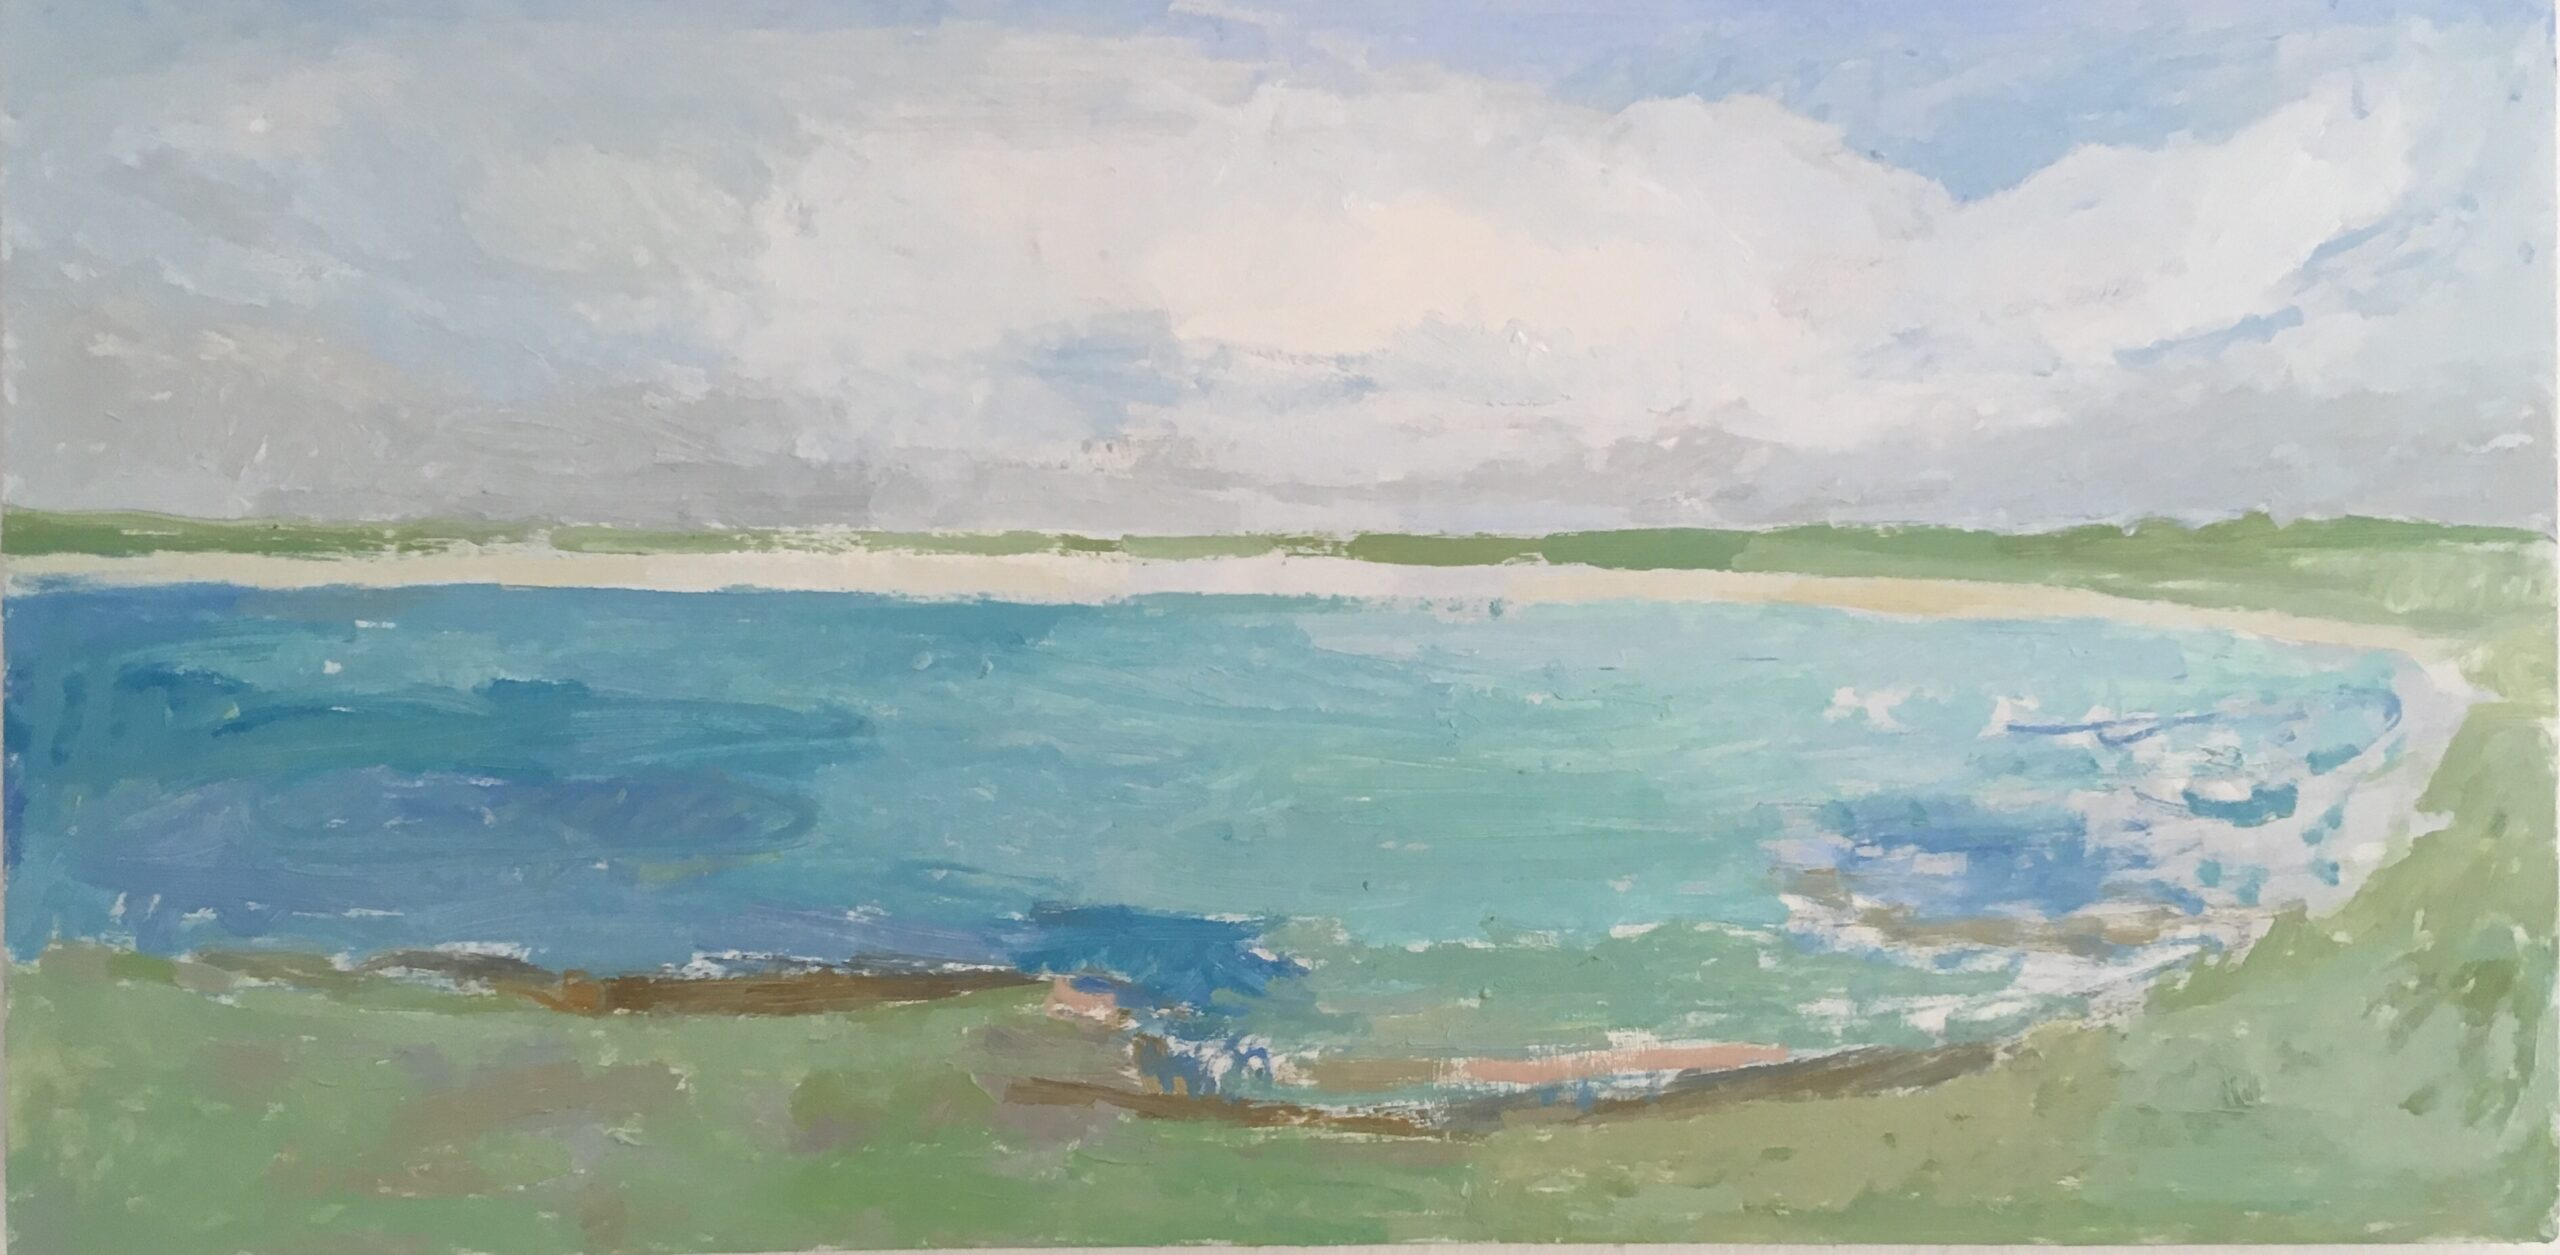 Connemara, West of Ireland, 2020 Jessica Biggs Oil on panel, 30 x 46 cm